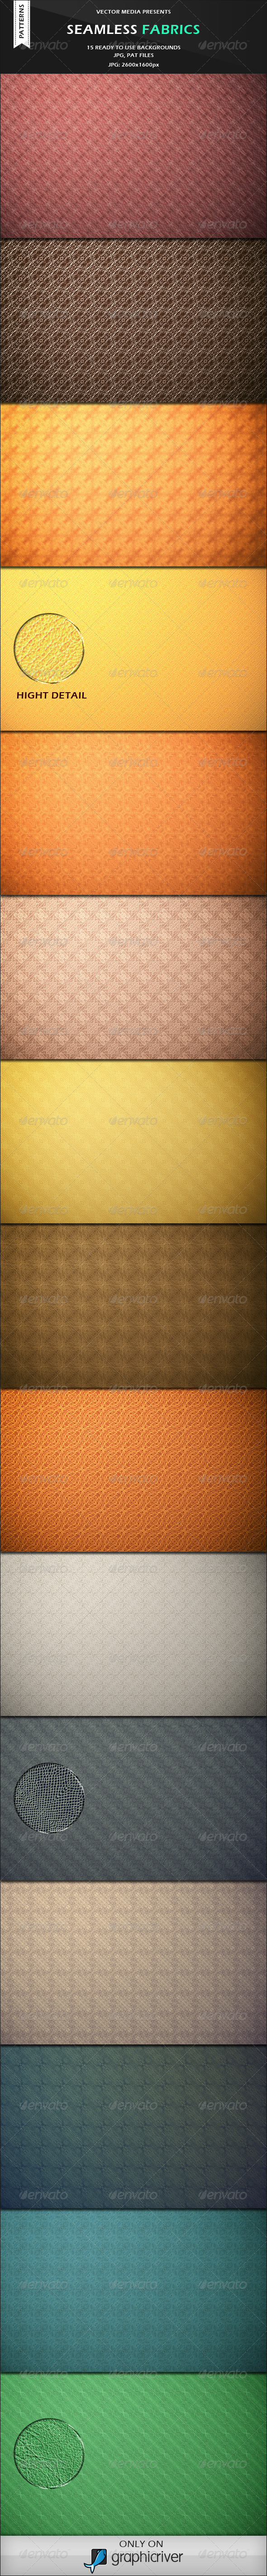 GraphicRiver Seamless Fabrics Photoshop Patterns 3271252